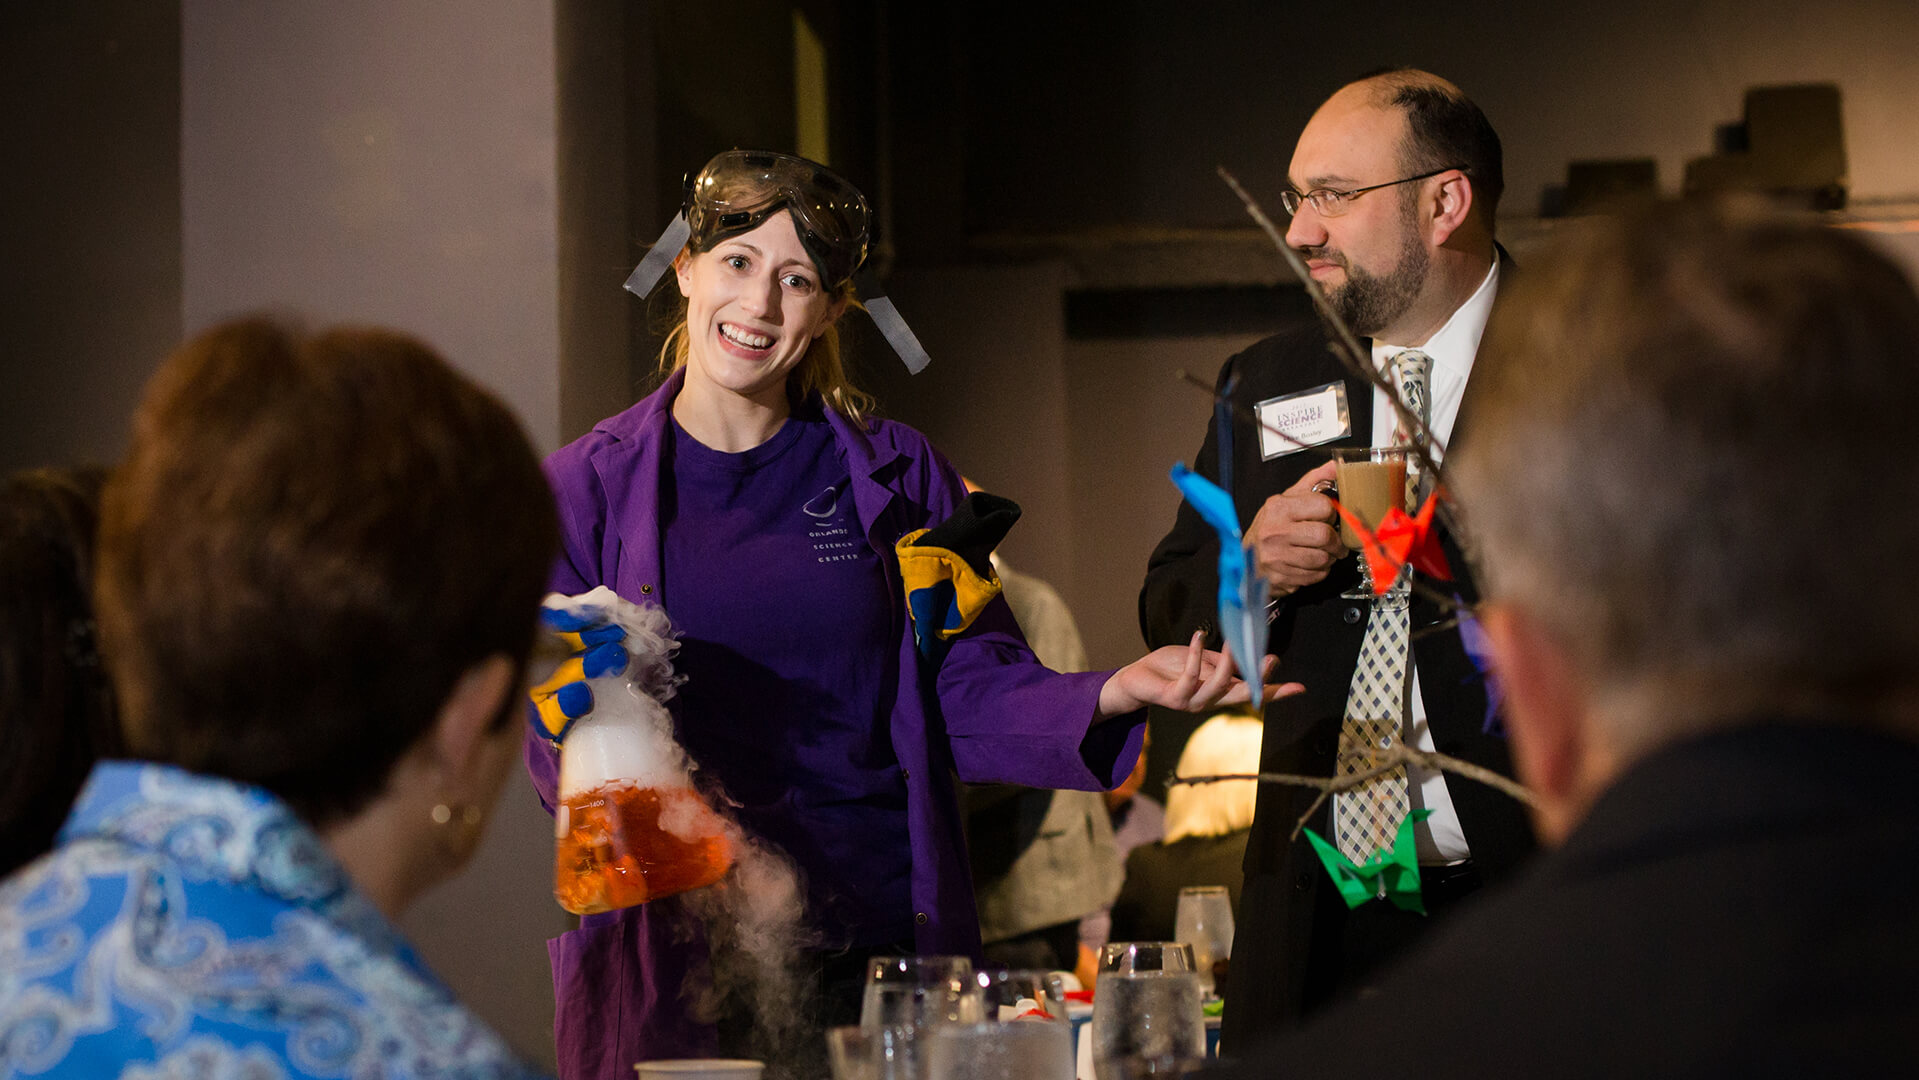 A Science Center presenter shows a beaker of liquid nitrogen to some guests.